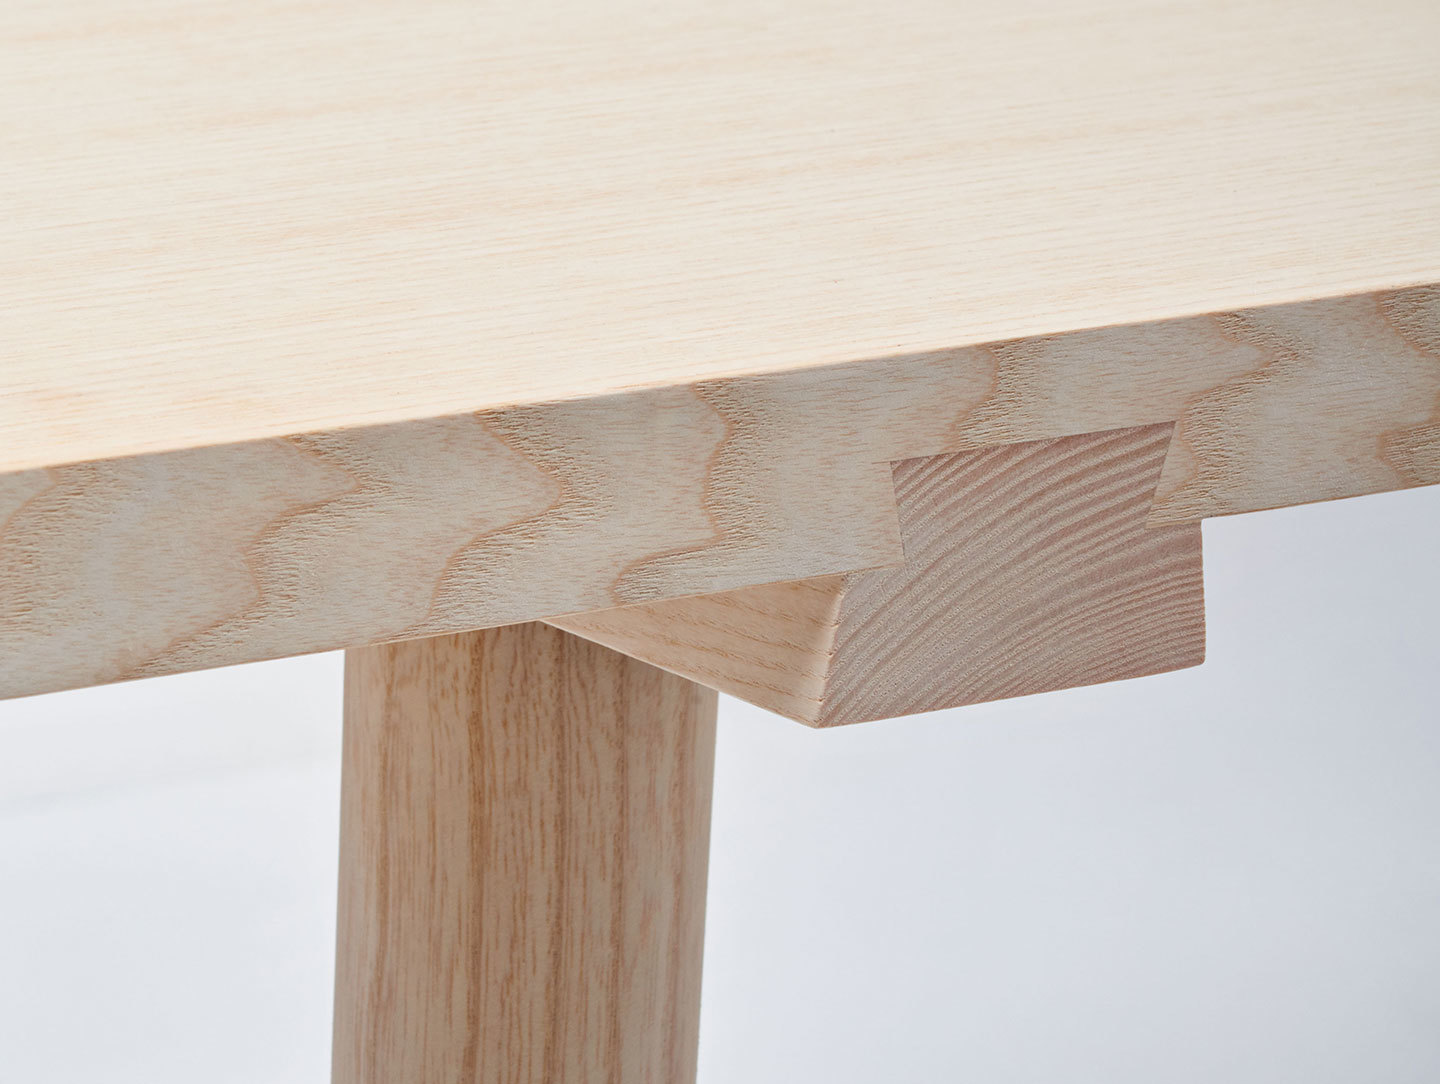 Mattiazzi Facile Table Joint Detail Lambl Homburger Meyer